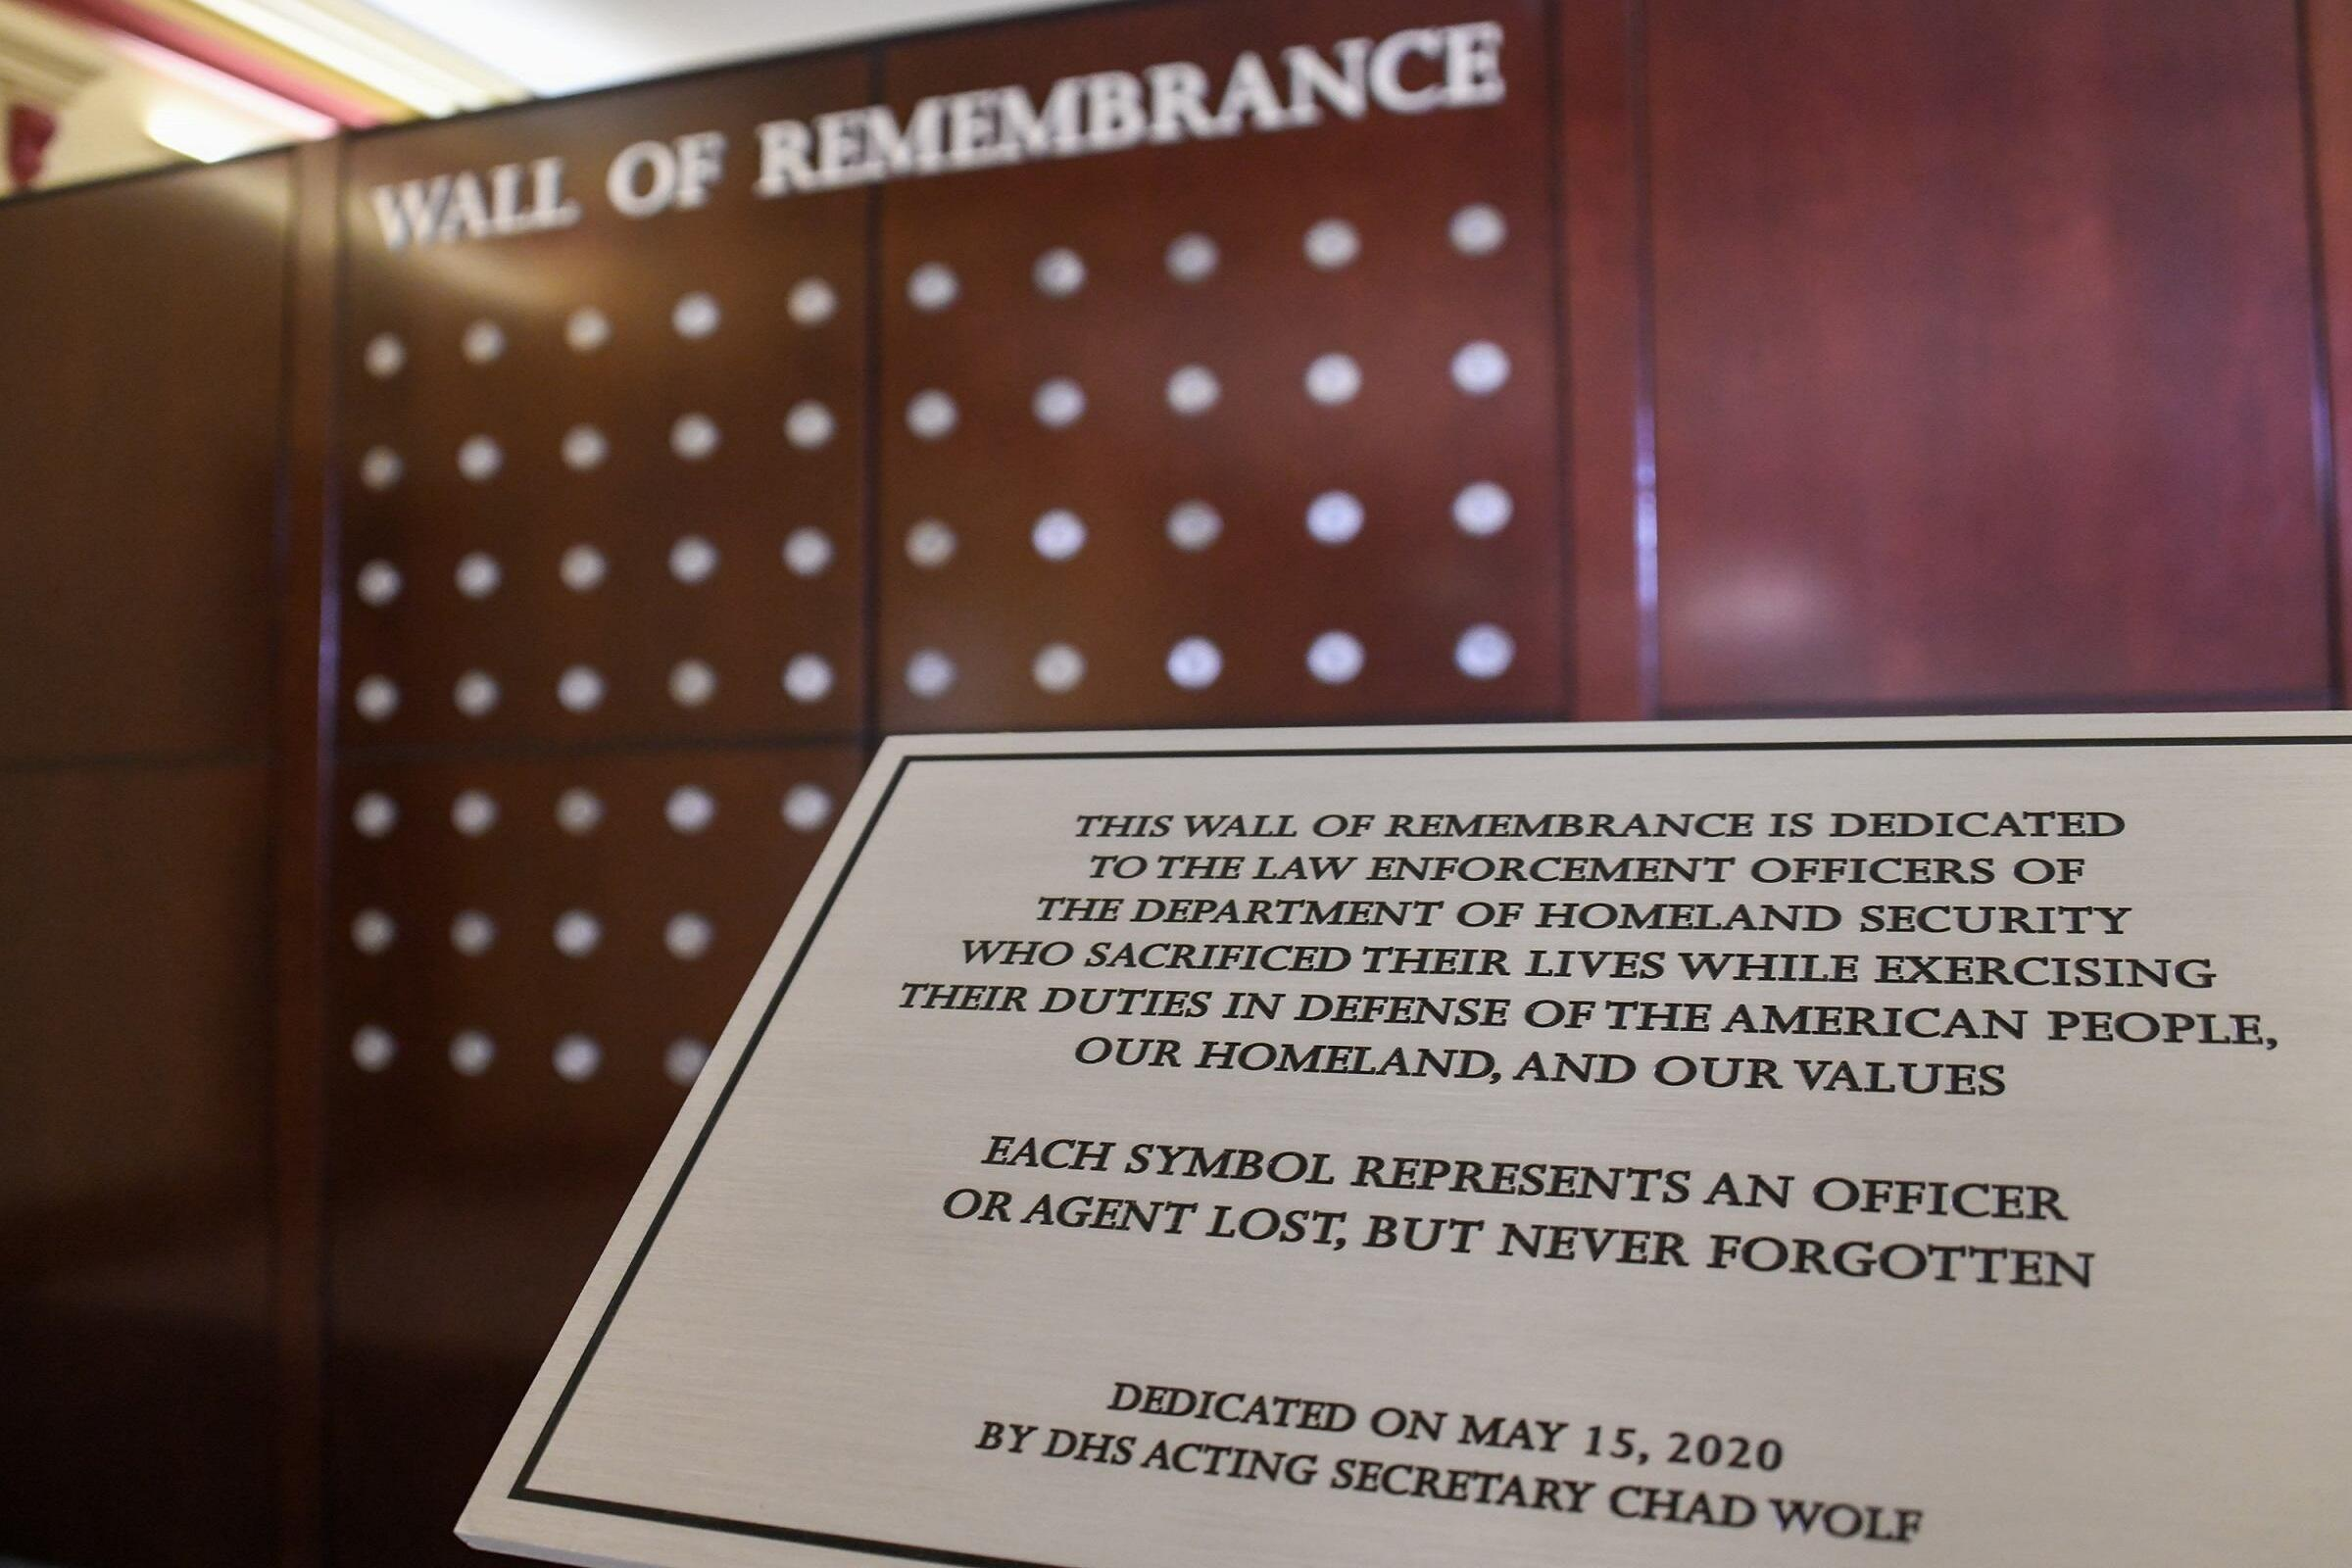 Wall of Remembrance, DHS headquarters